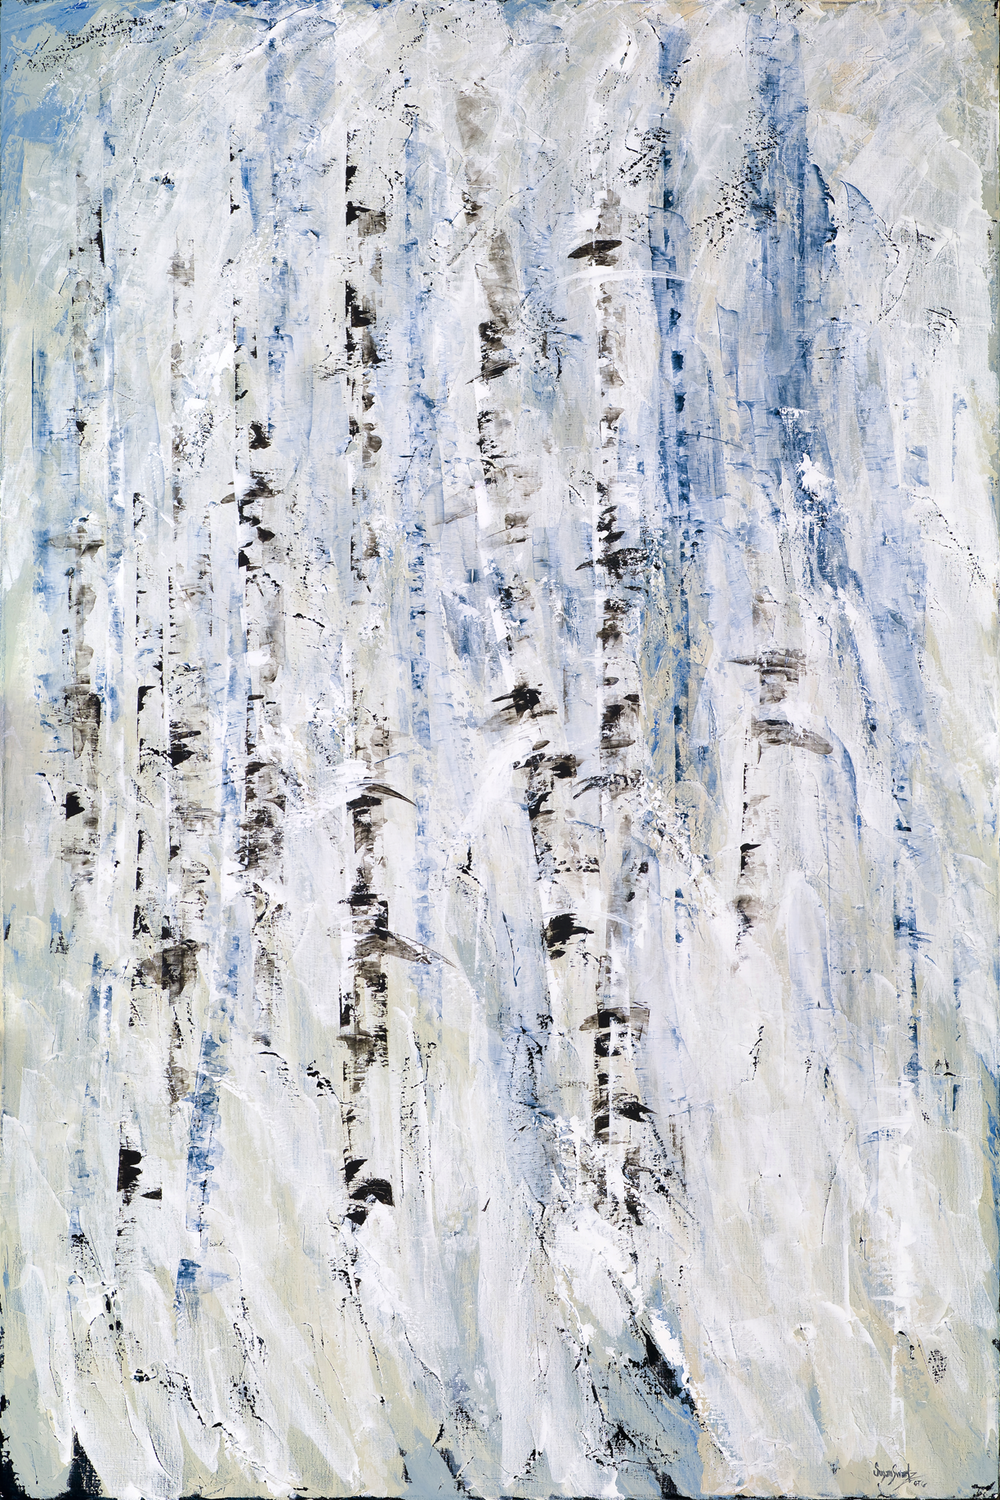 Winter's Hush III 48 x 72